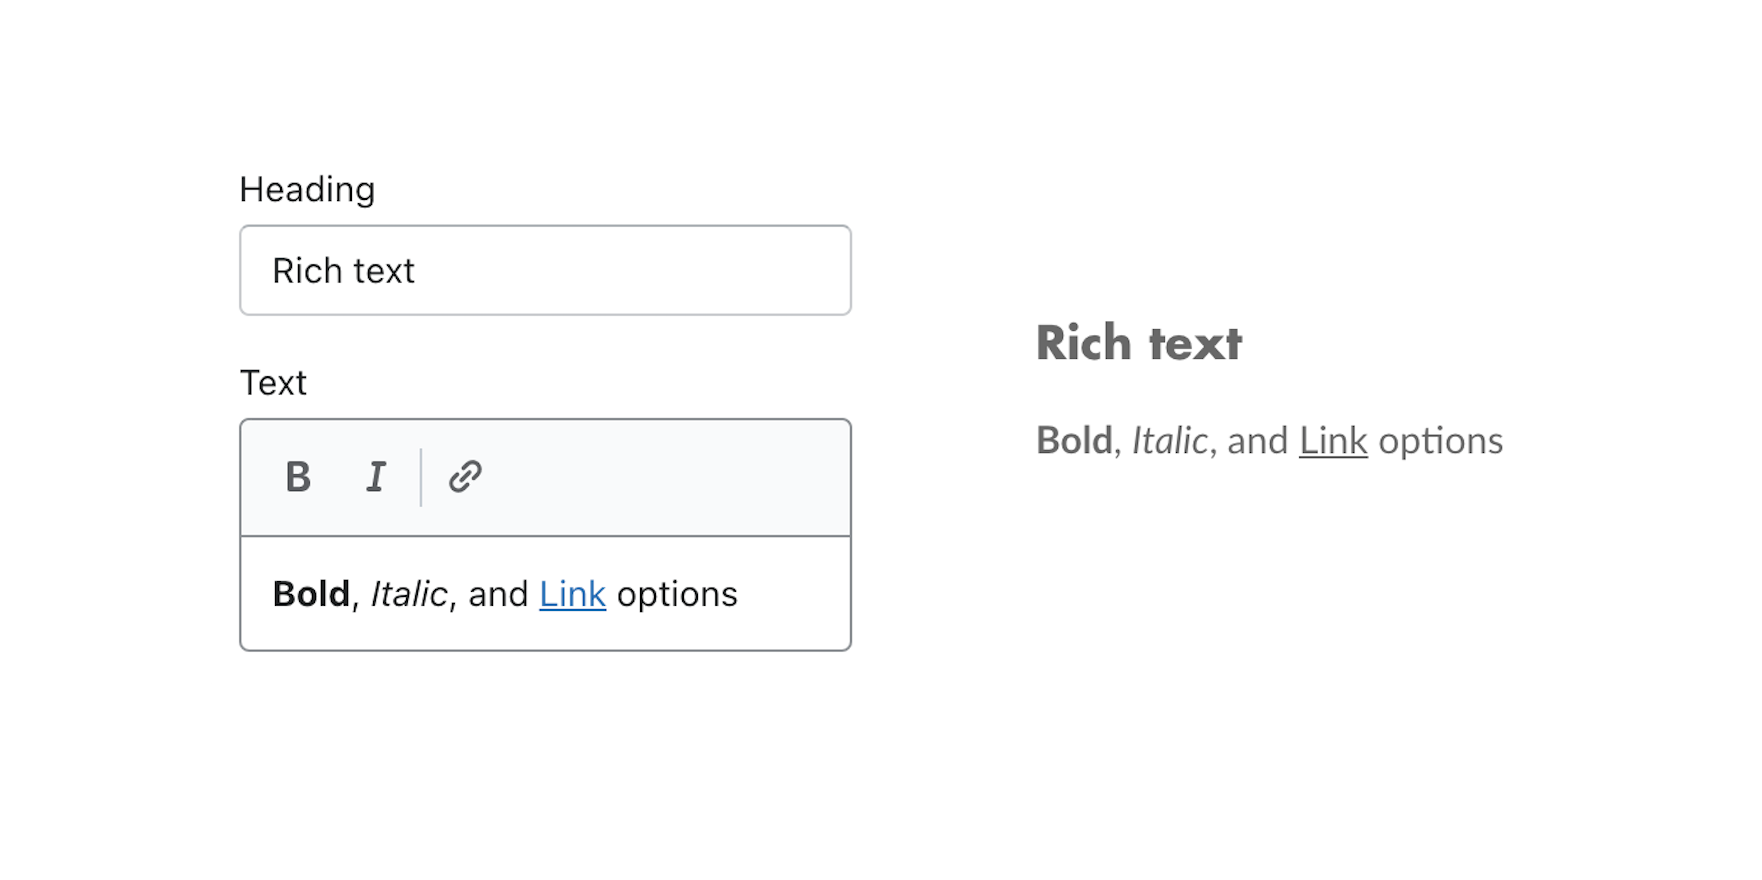 use_rich_text_bold_italic_and_link_options.png